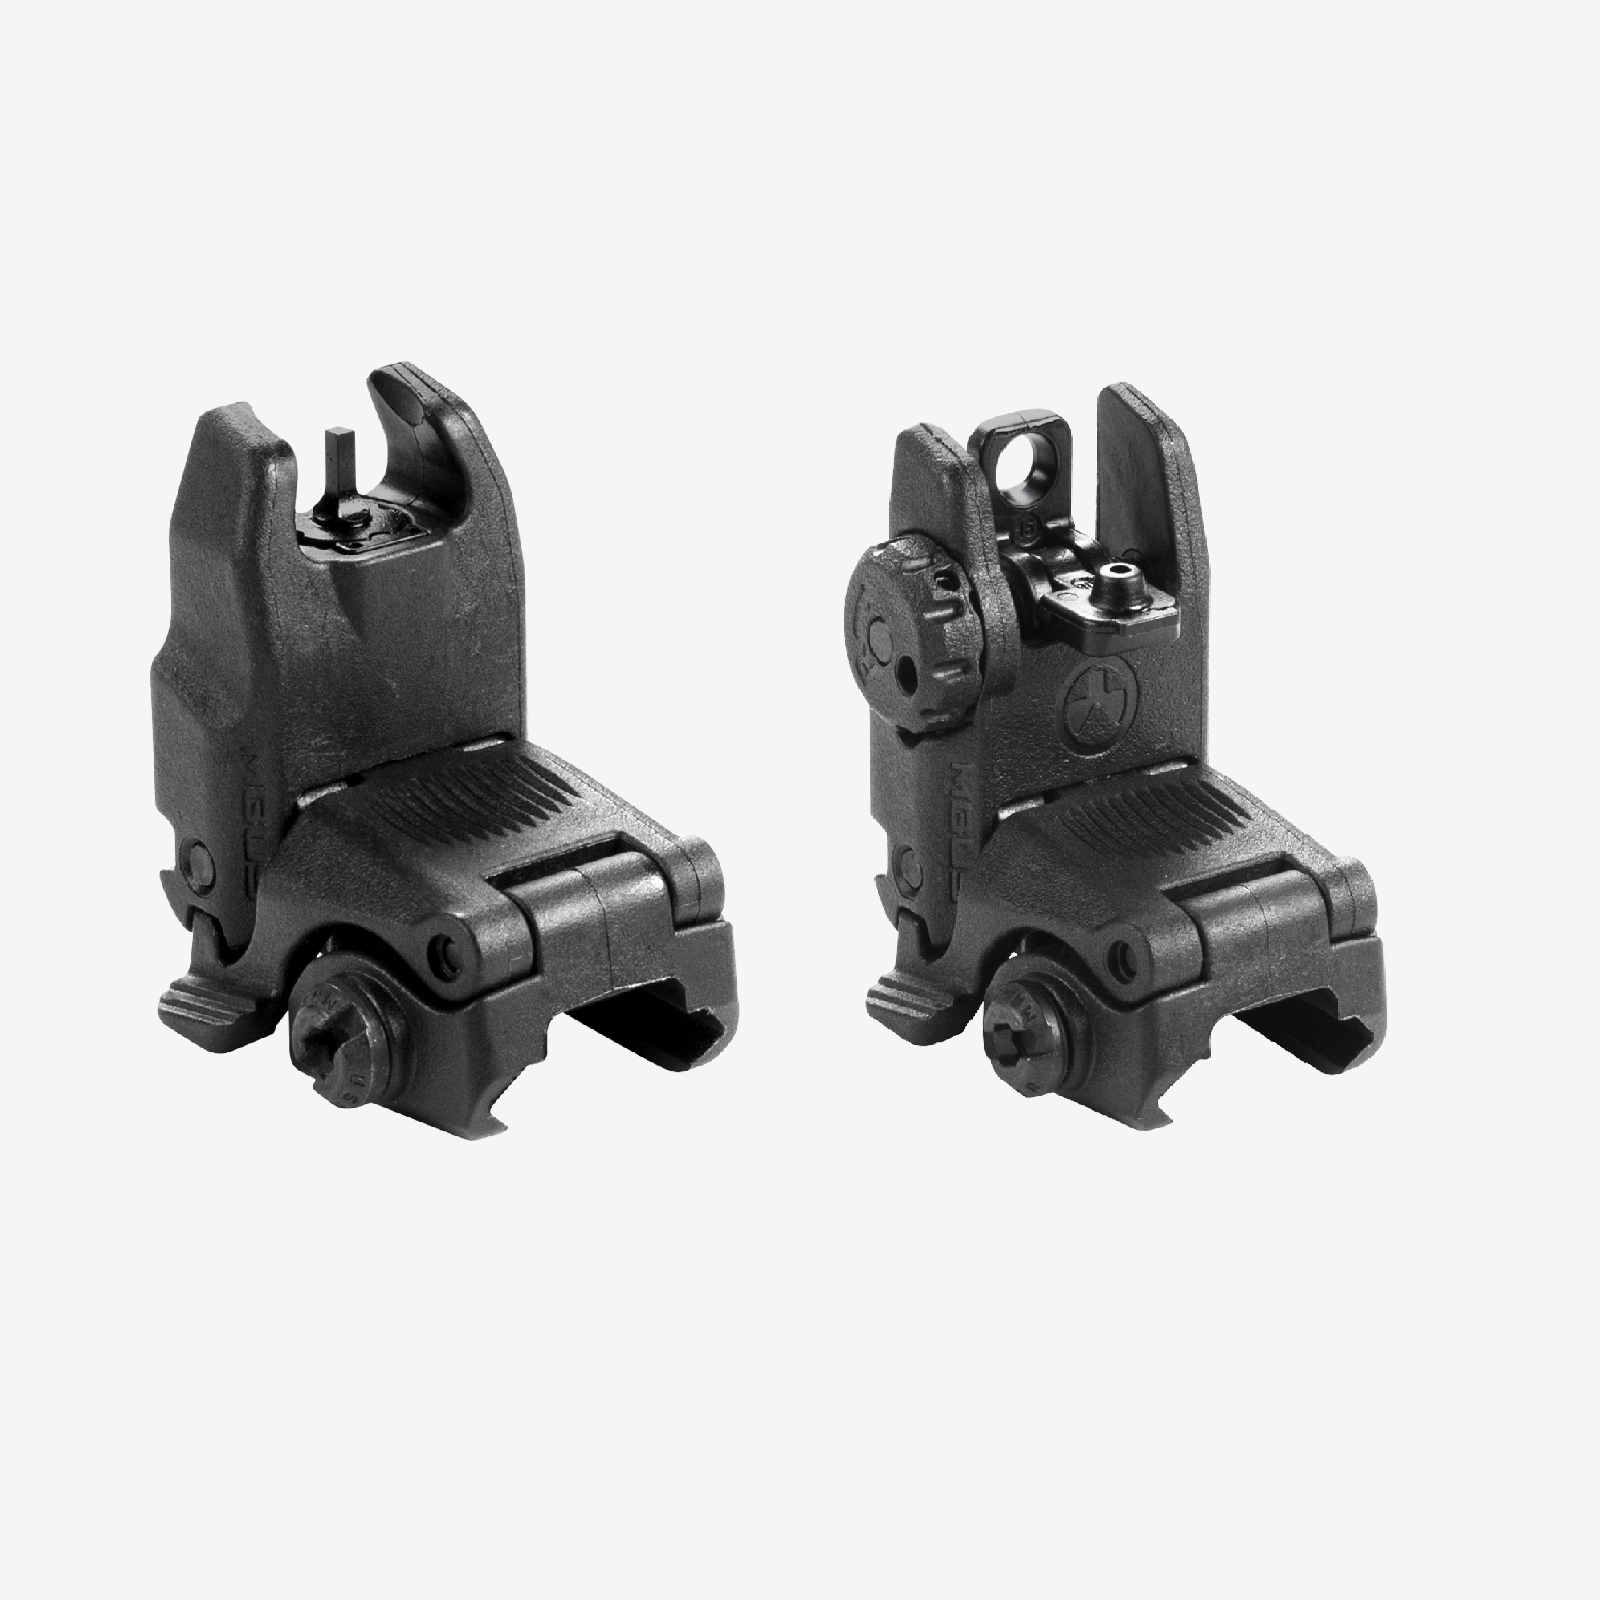 Magpul MBUS Sight for Front Flip-Up and Rear Sight Gen II